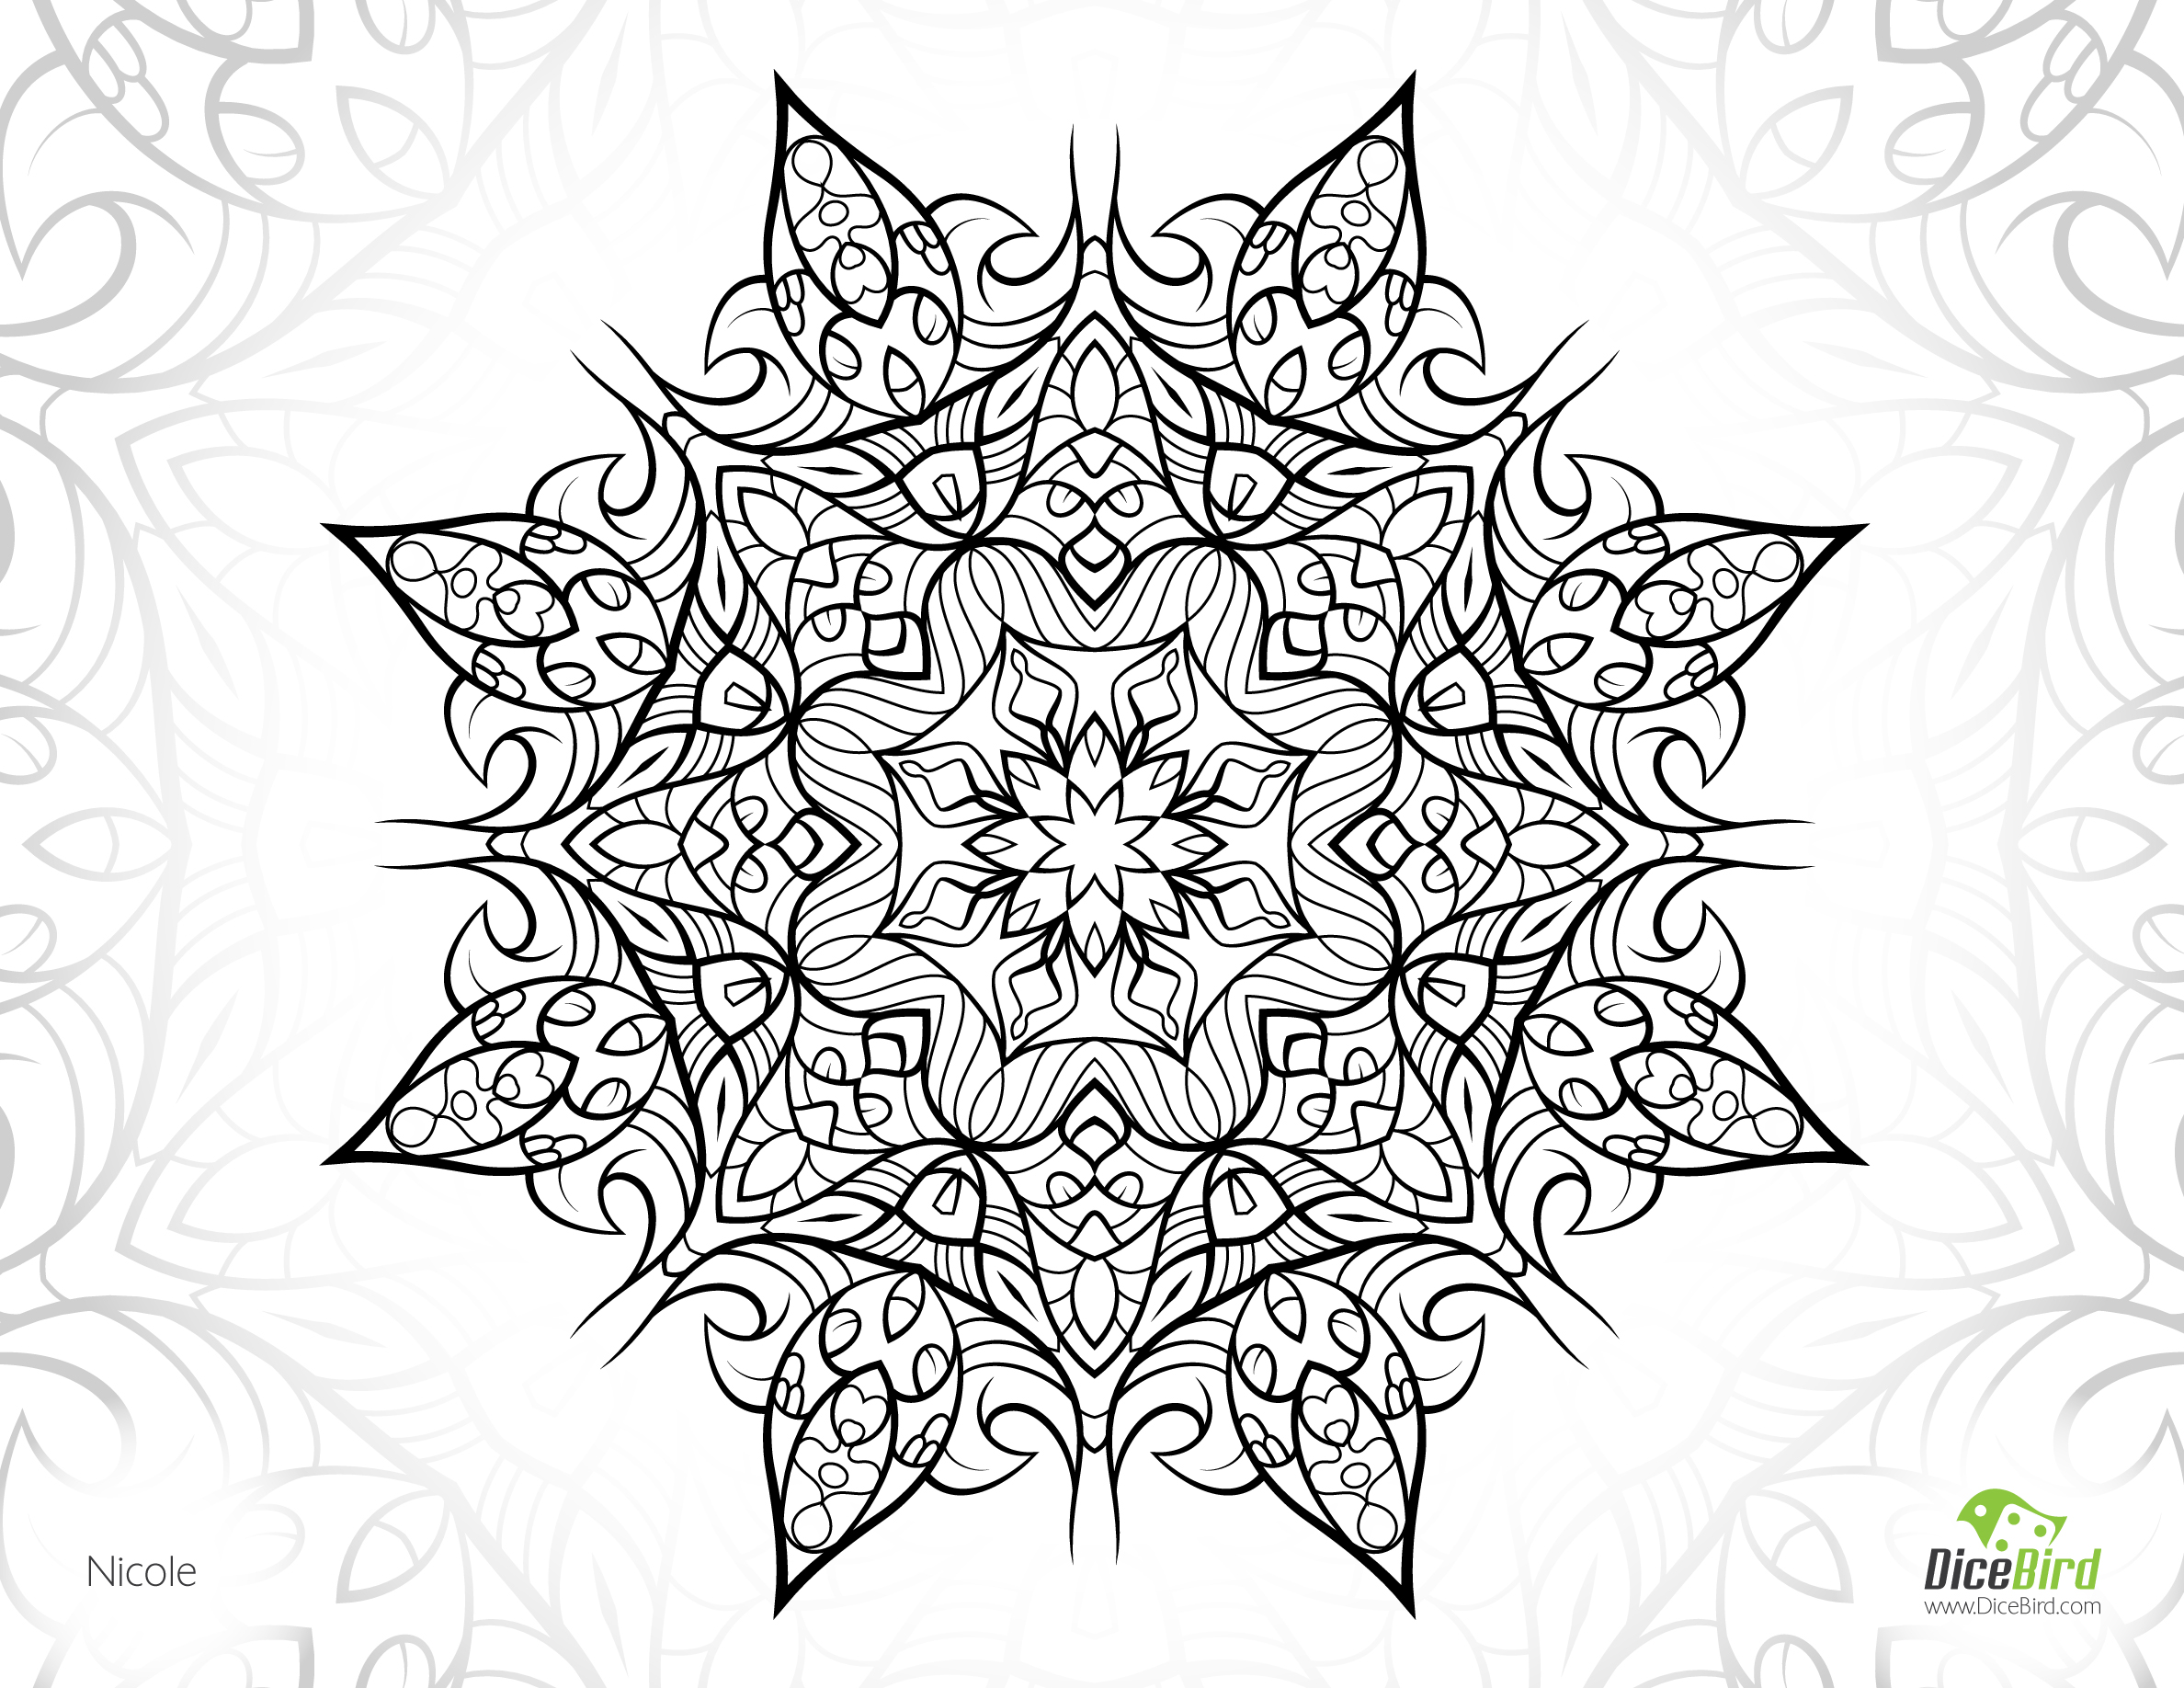 2376x1836 Coloring Pages For Adults Difficult Flower